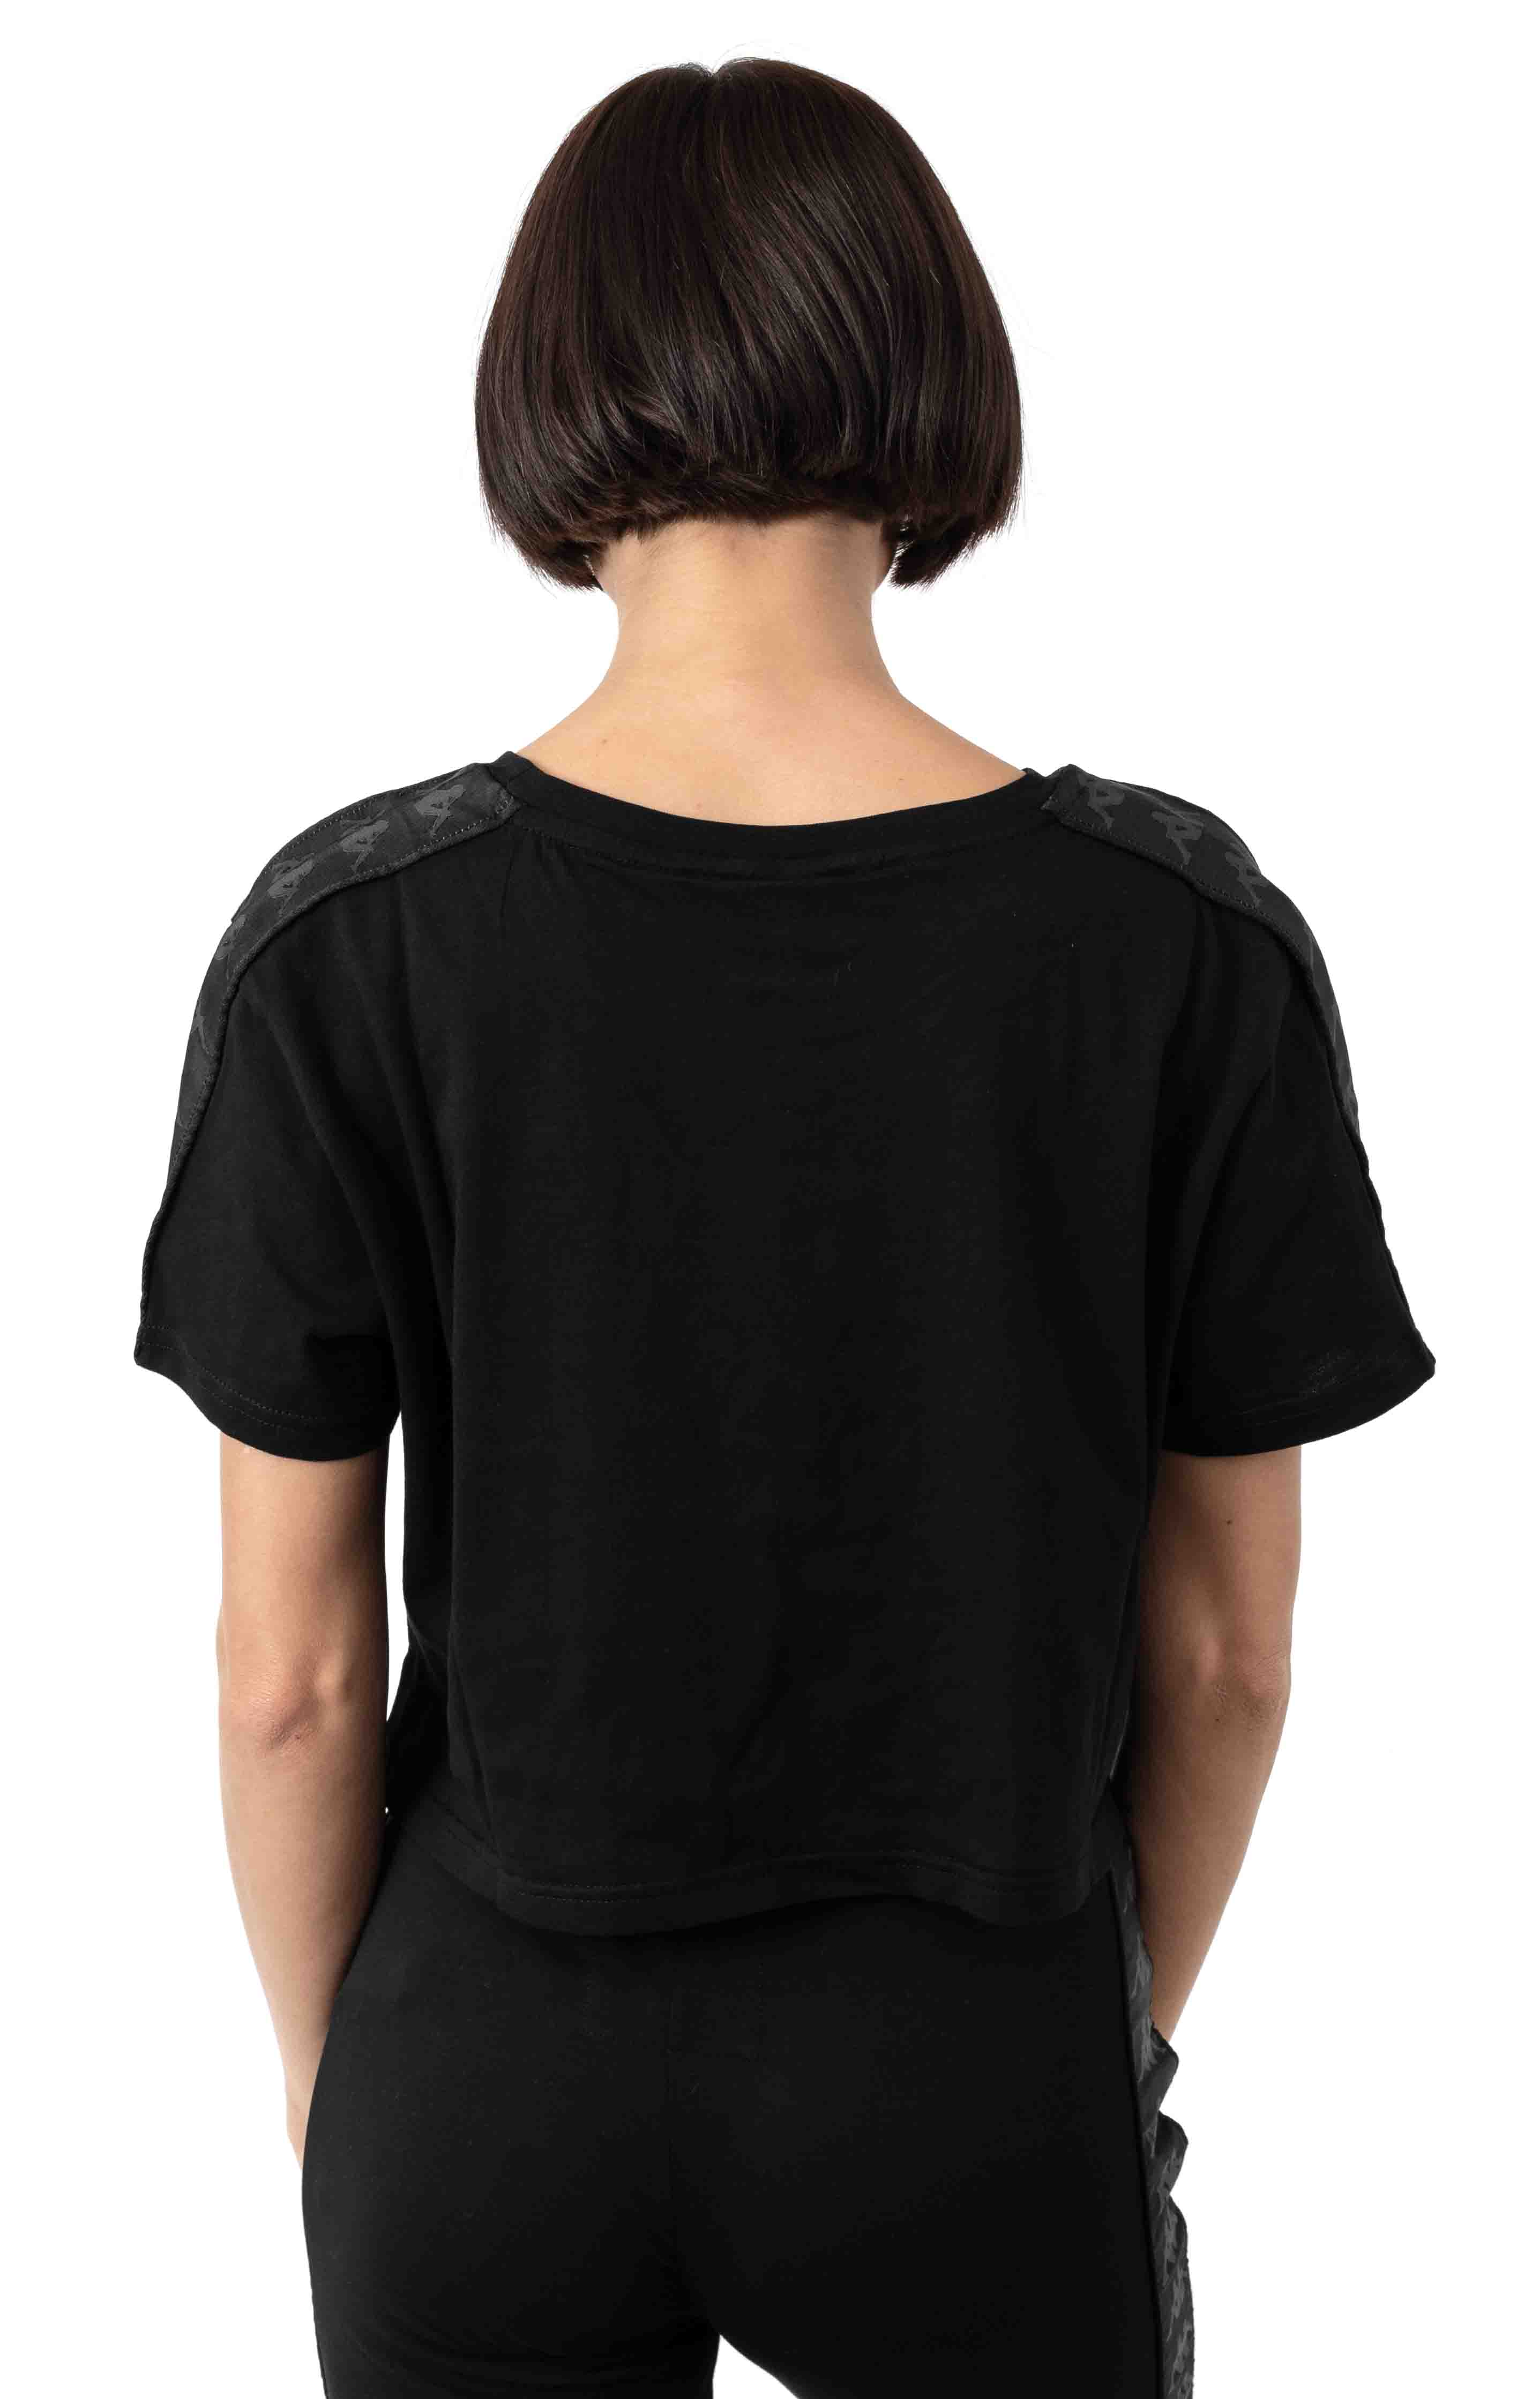 222 Banda Apua Alternating Banda T-Shirt - Black 3